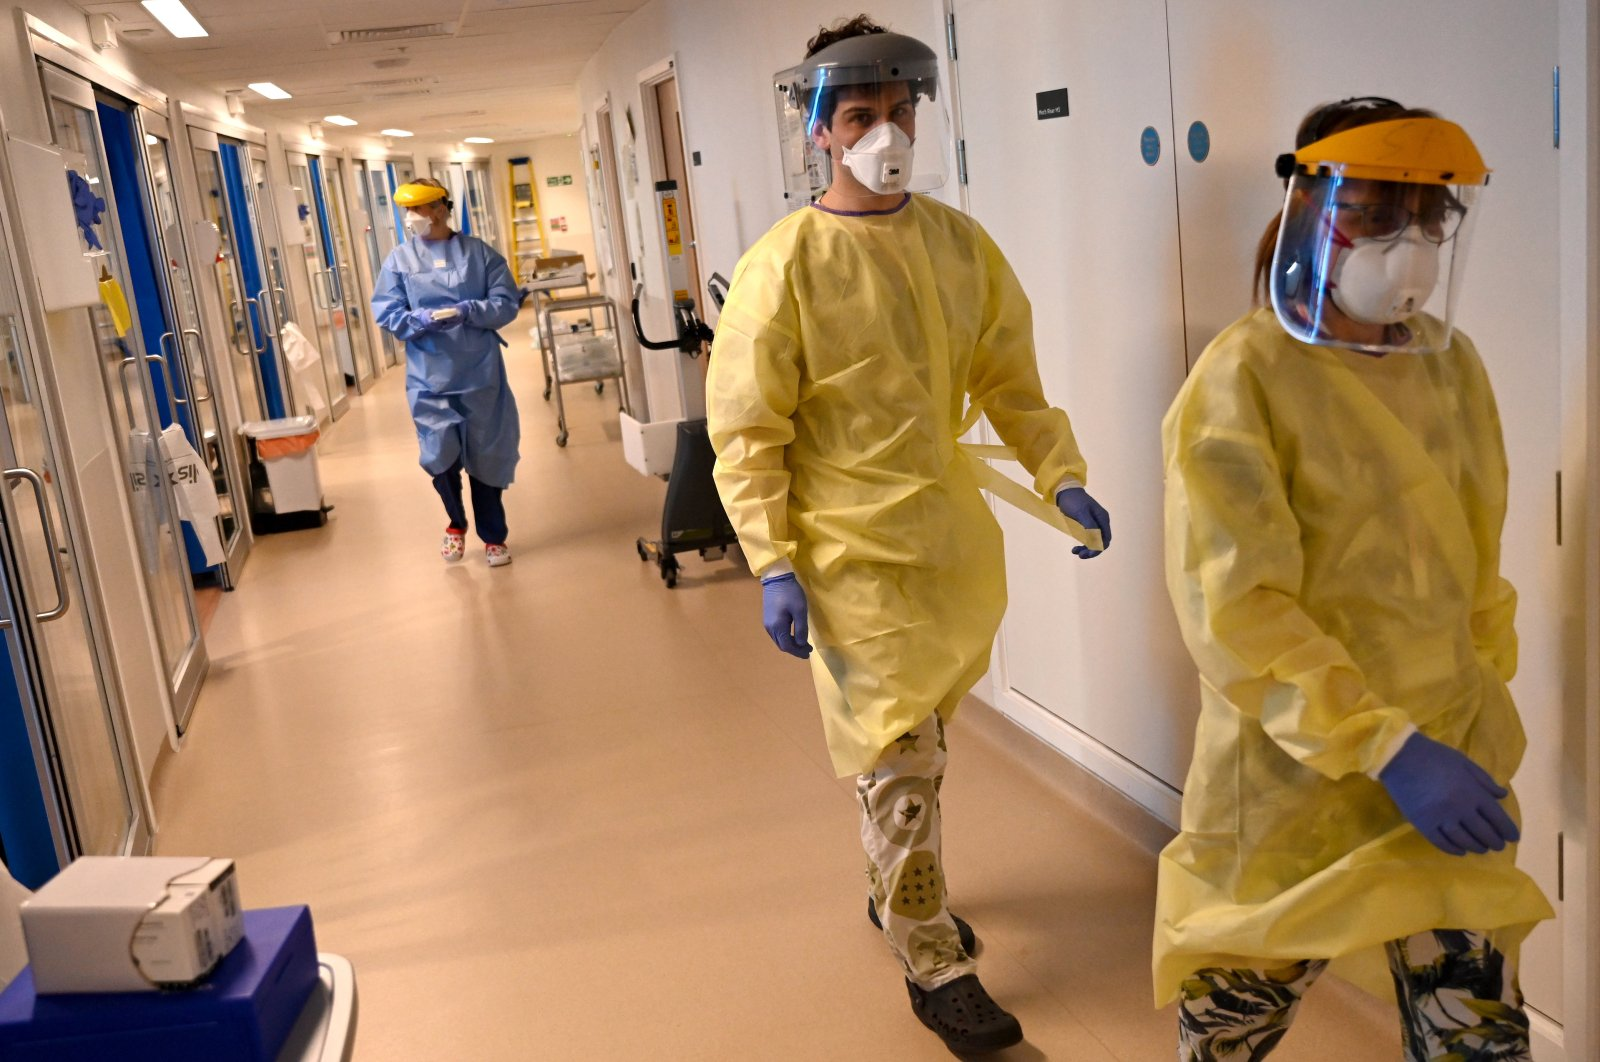 Clinical staff wear personal protective equipment (PPE) as they care for a patient at the intensive care unit at Royal Papworth Hospital in Cambridge, Britain, May 5, 2020. (EPA Photo)